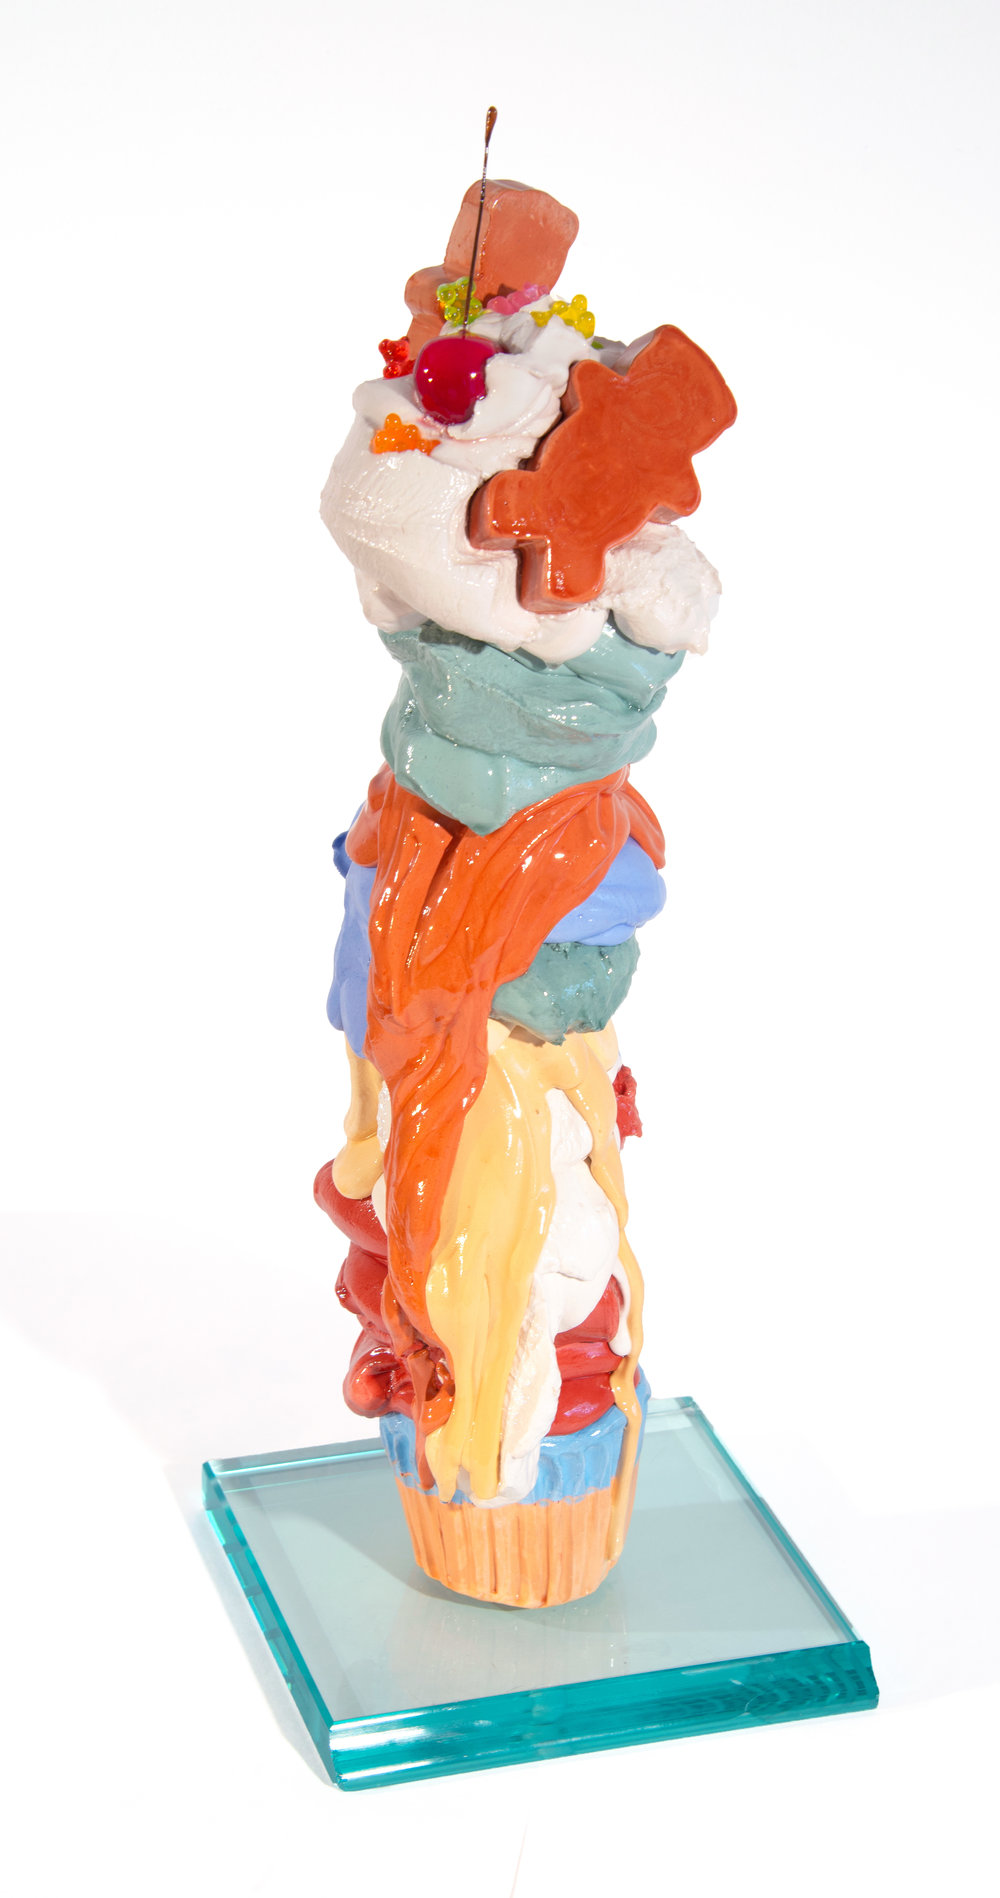 "Candy Land - 19"" x 7"" x 7""Cement, mix media, glass baseSOLD"